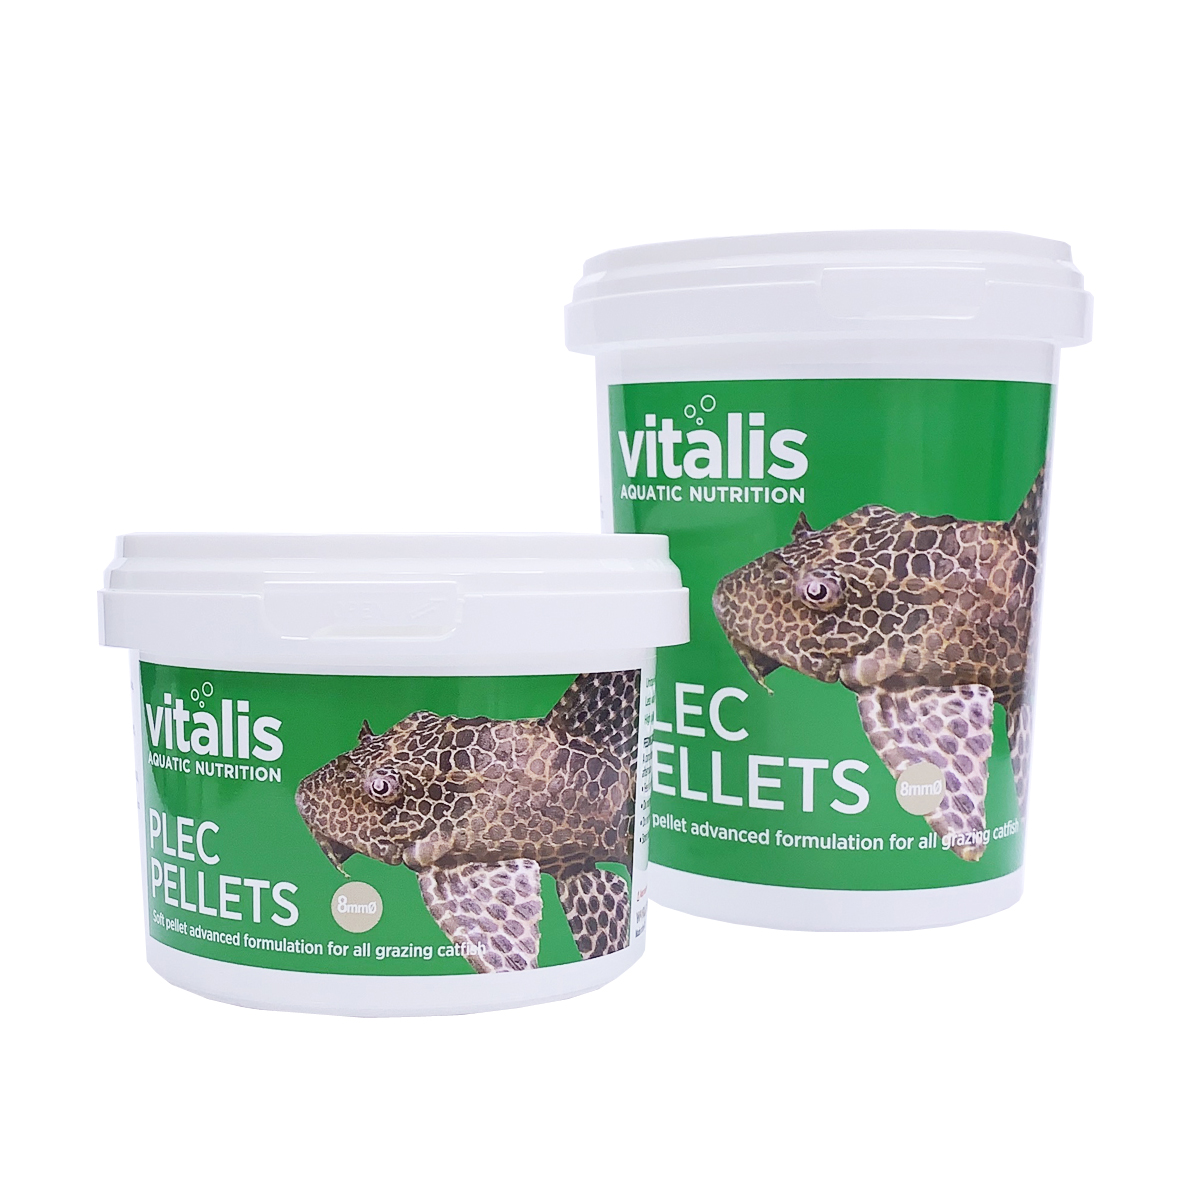 VITALIS PLEC PELLETS 8MM 160G 280ML